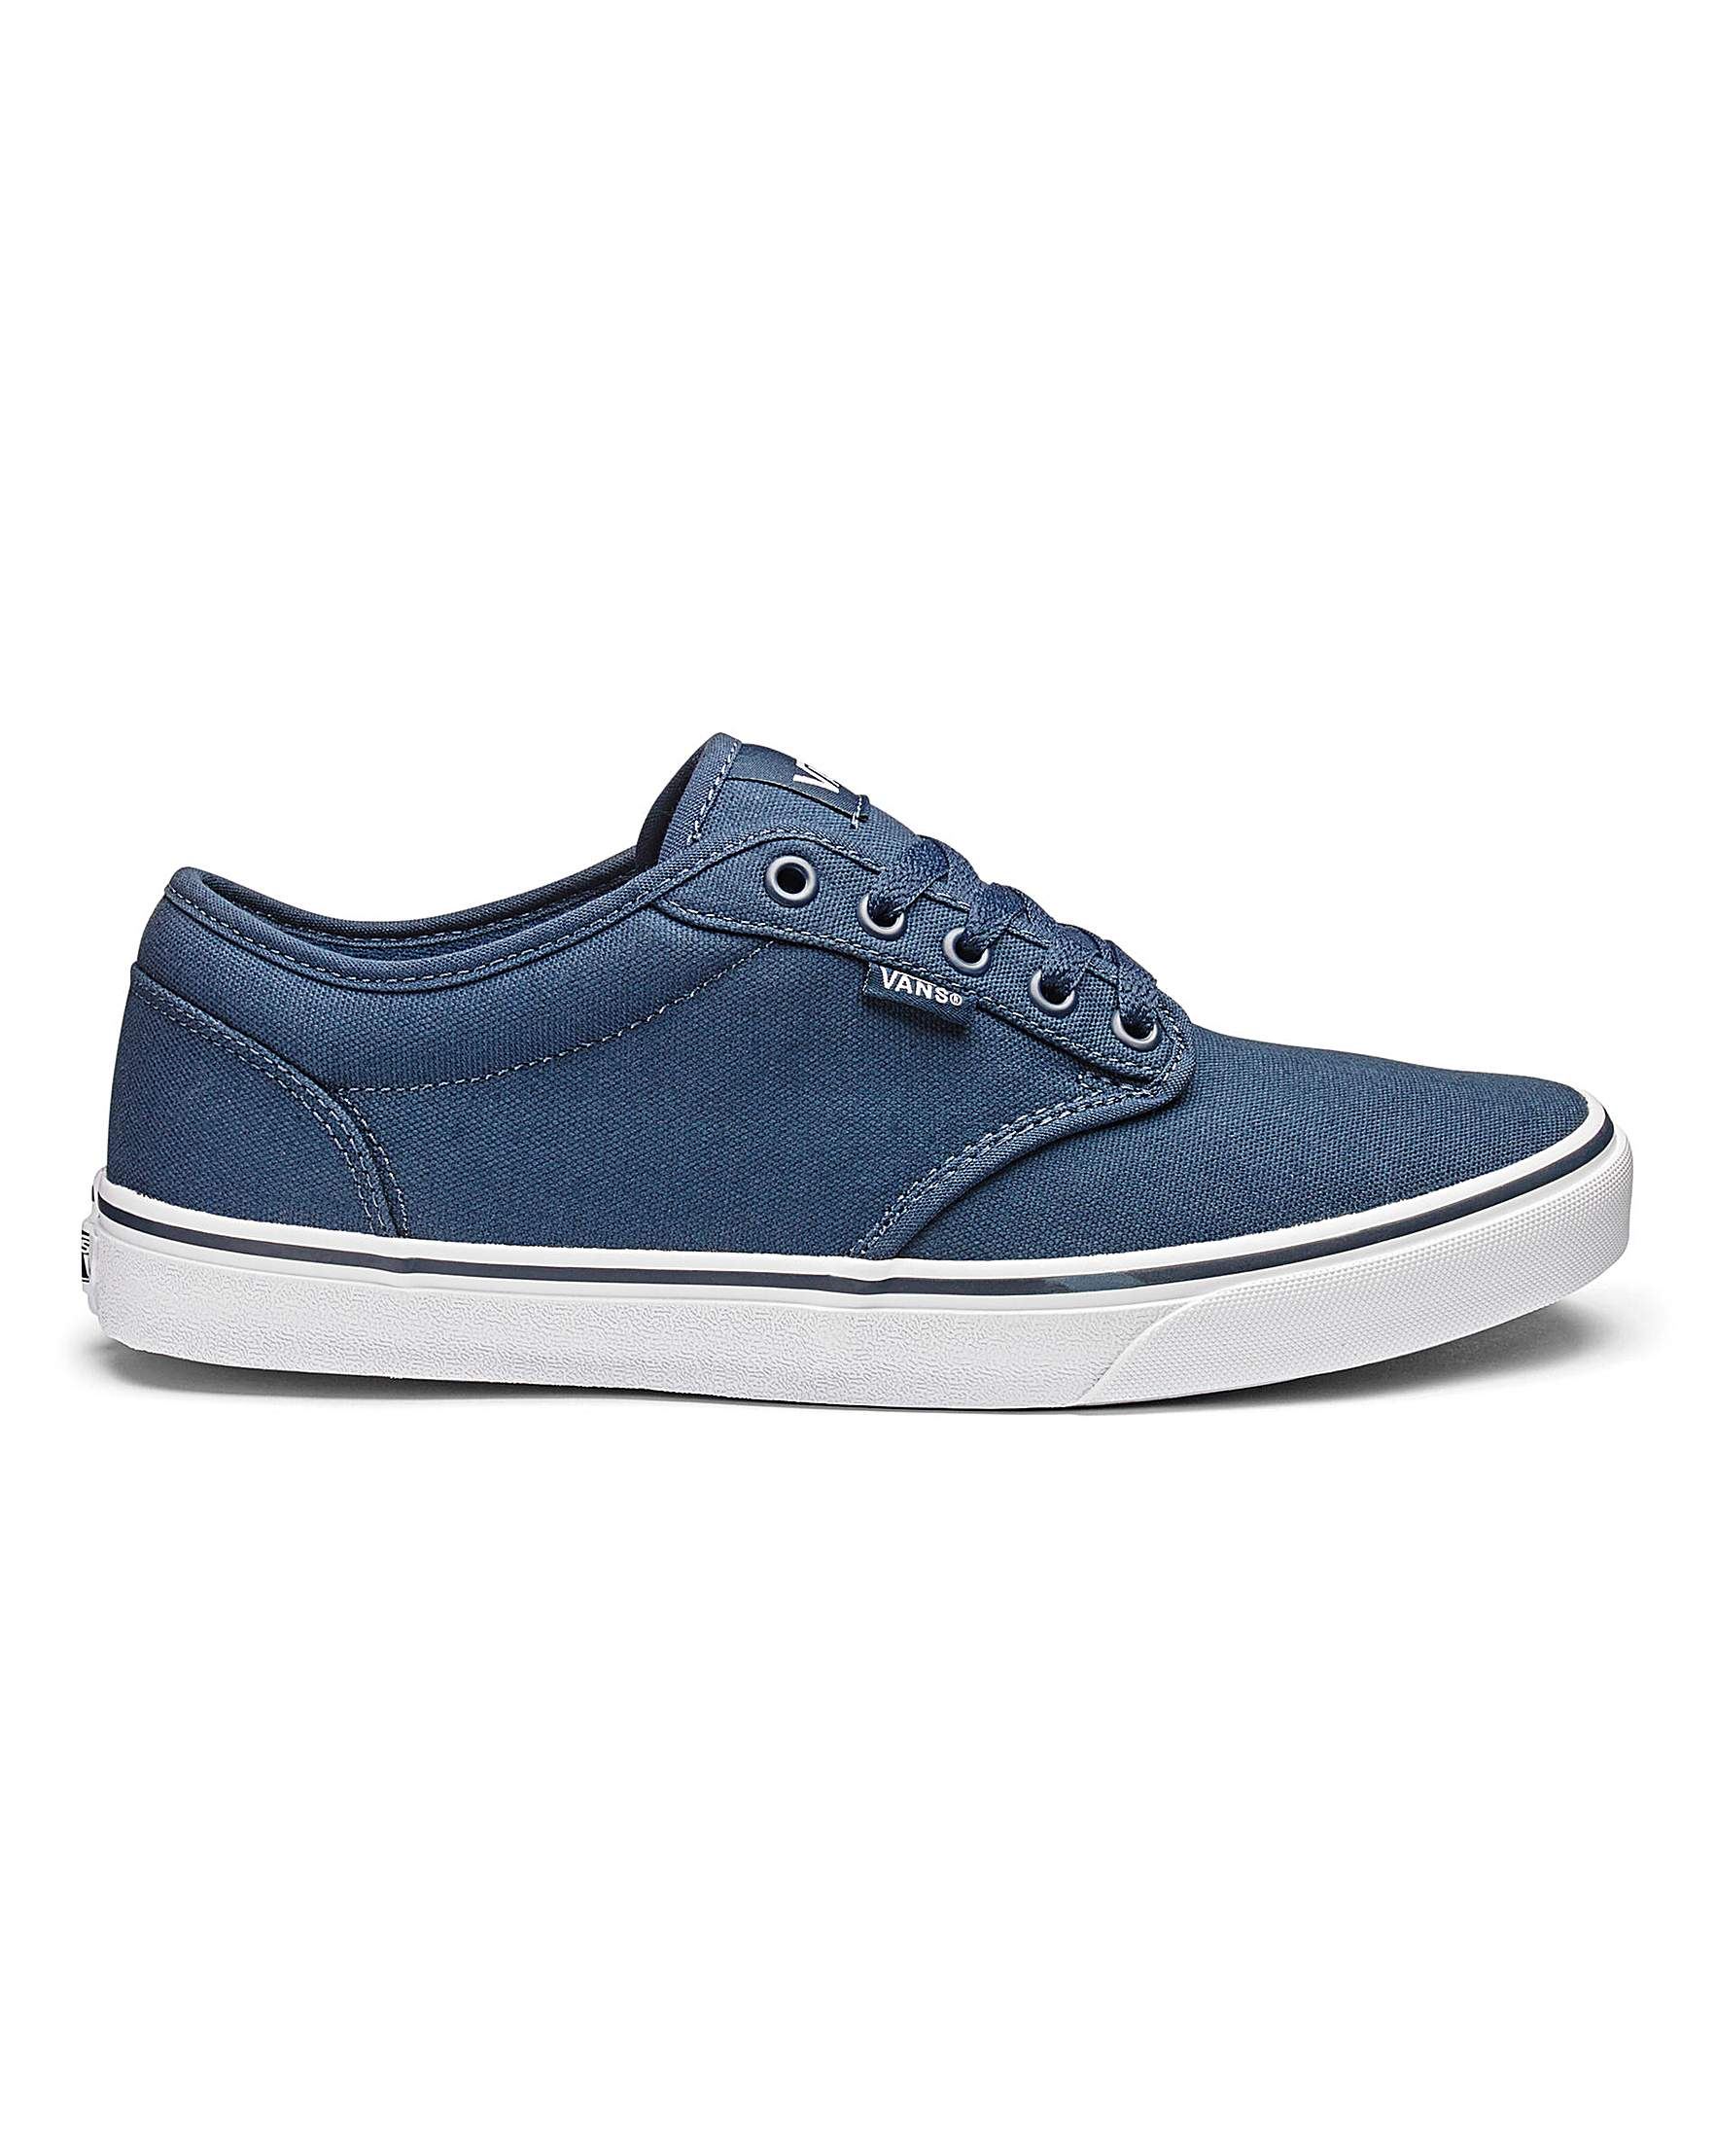 f27926a73c9d55 Vans Atwood Lace Up Casual Shoes